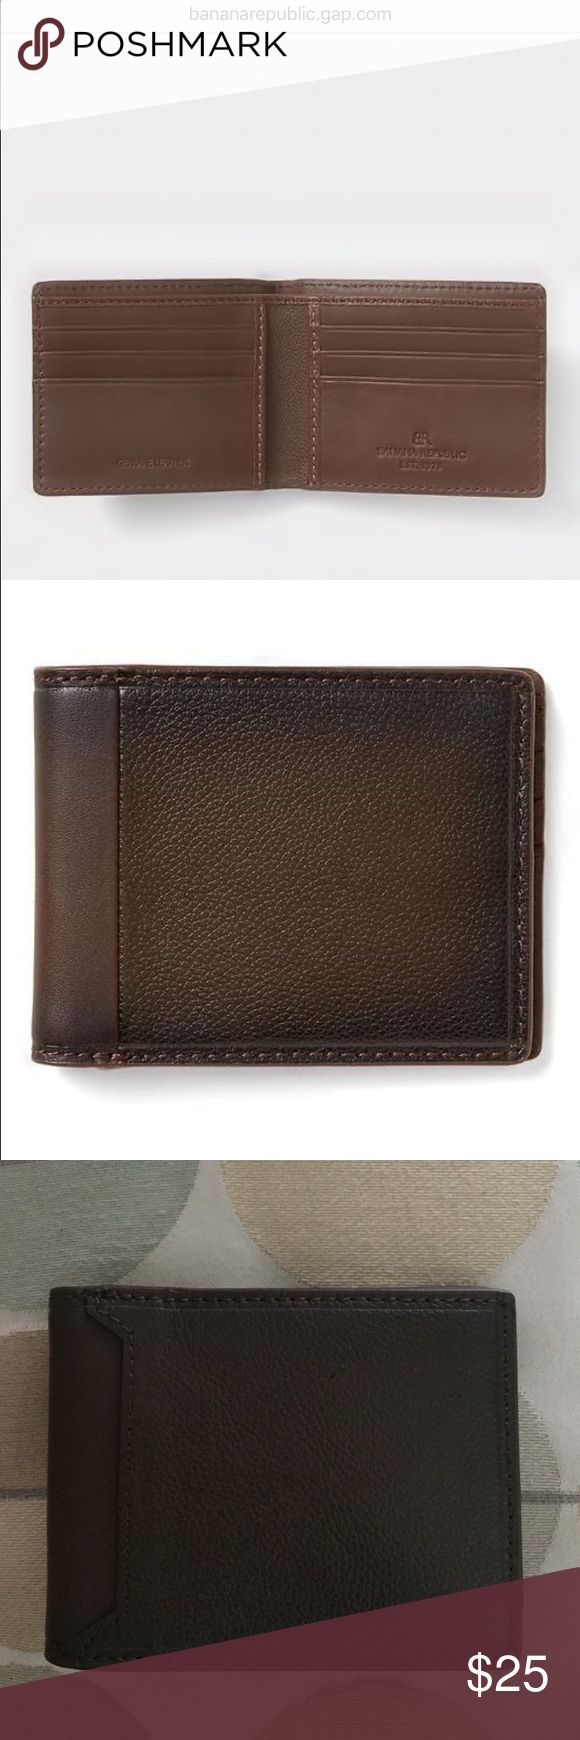 Banana Republic Mens Wallet Banana republic * 100% leather. * Imported. * Holds up to four credit cards. * Lined bill pocket. Banana Republic Other